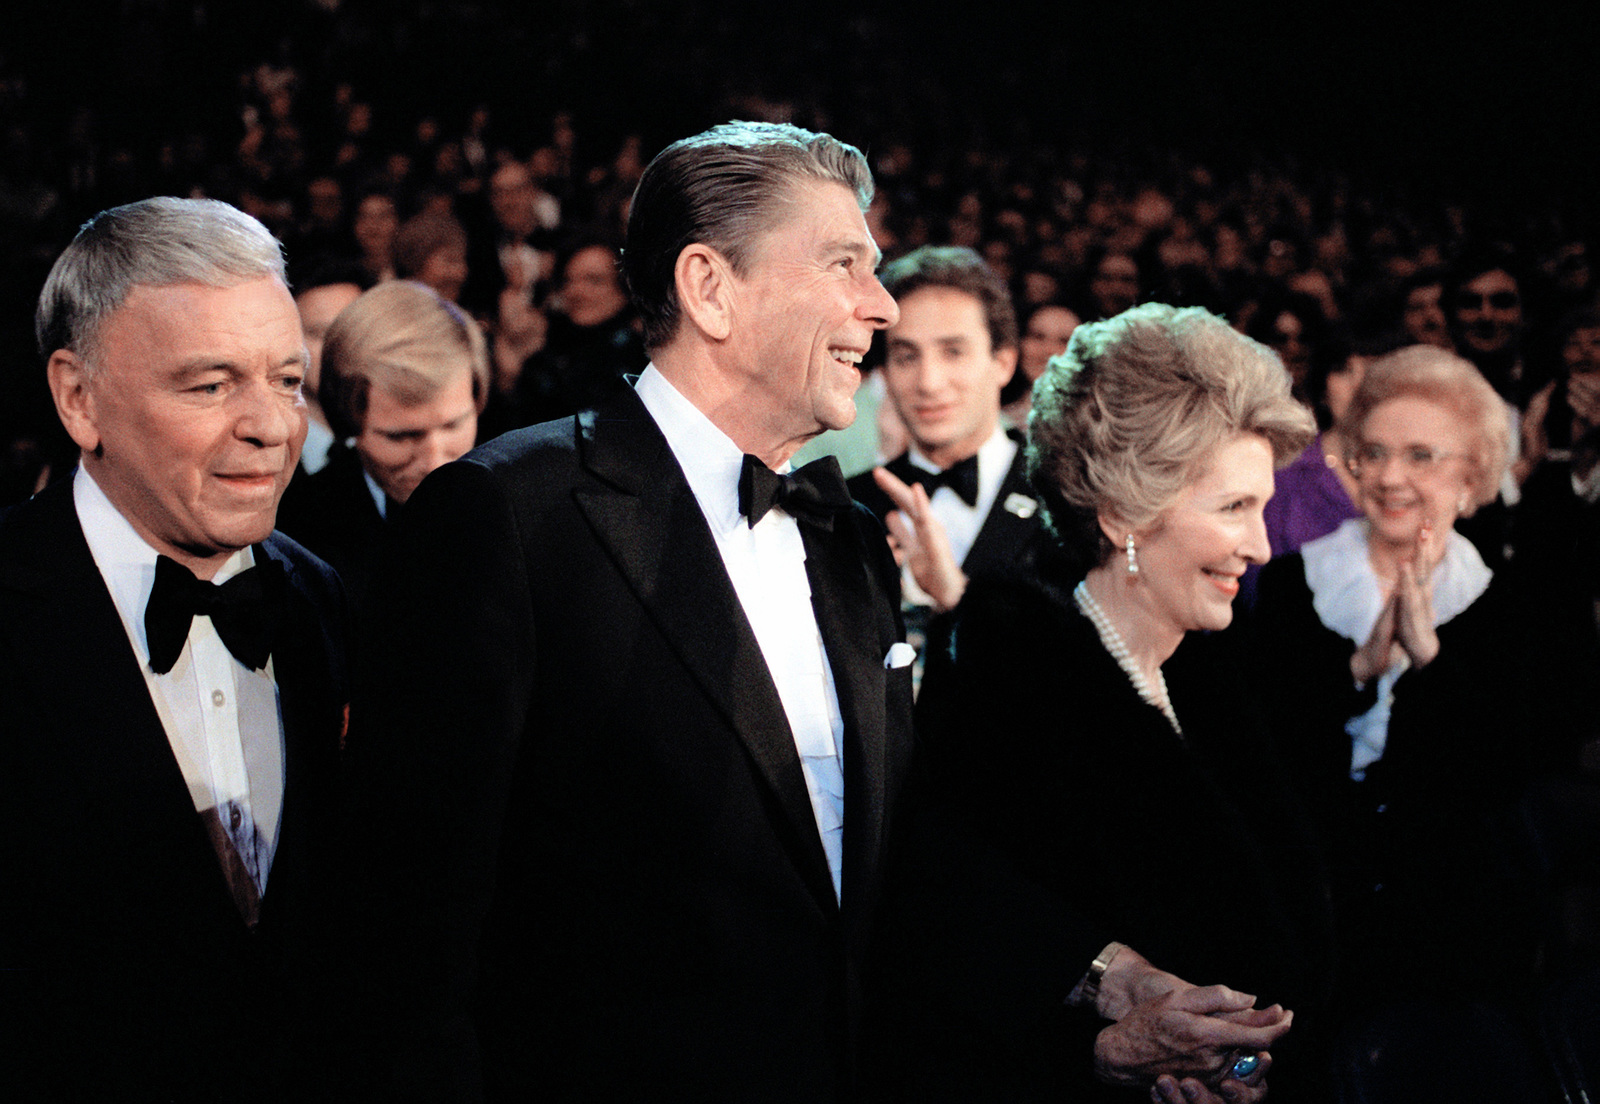 President Ronald W. Reagan and his wife are hand in hand as they say hello to their friends and guests during their gala celebration at the Capital Center, during Inauguration Day. To the President's right is the entertainer Frank Sinatra